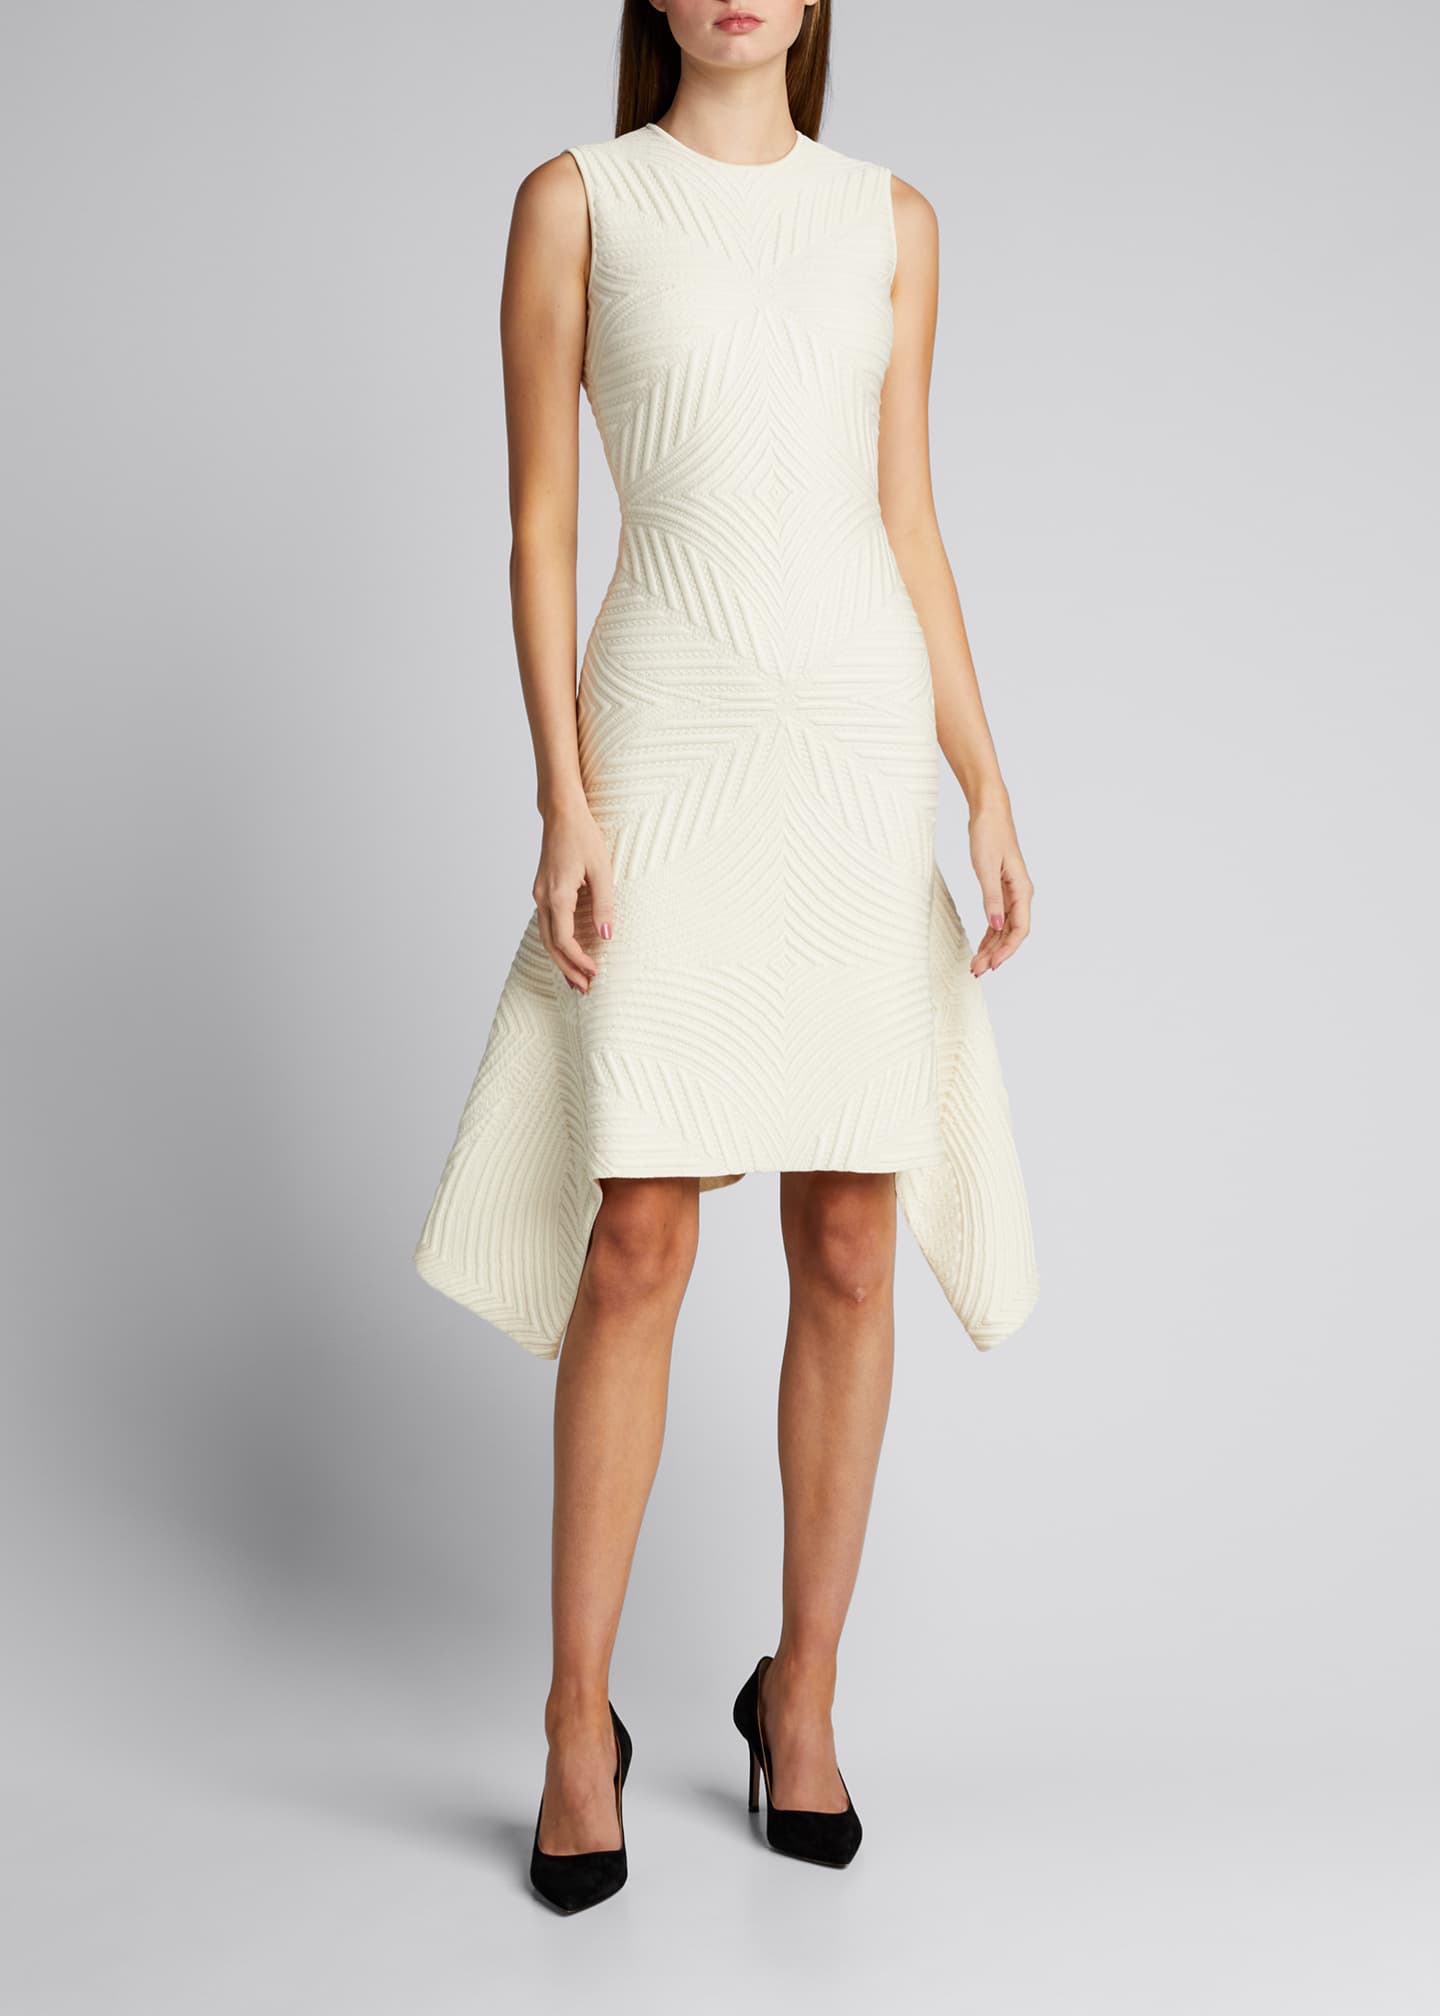 Textured Asymmetric Wool-Blend Dress